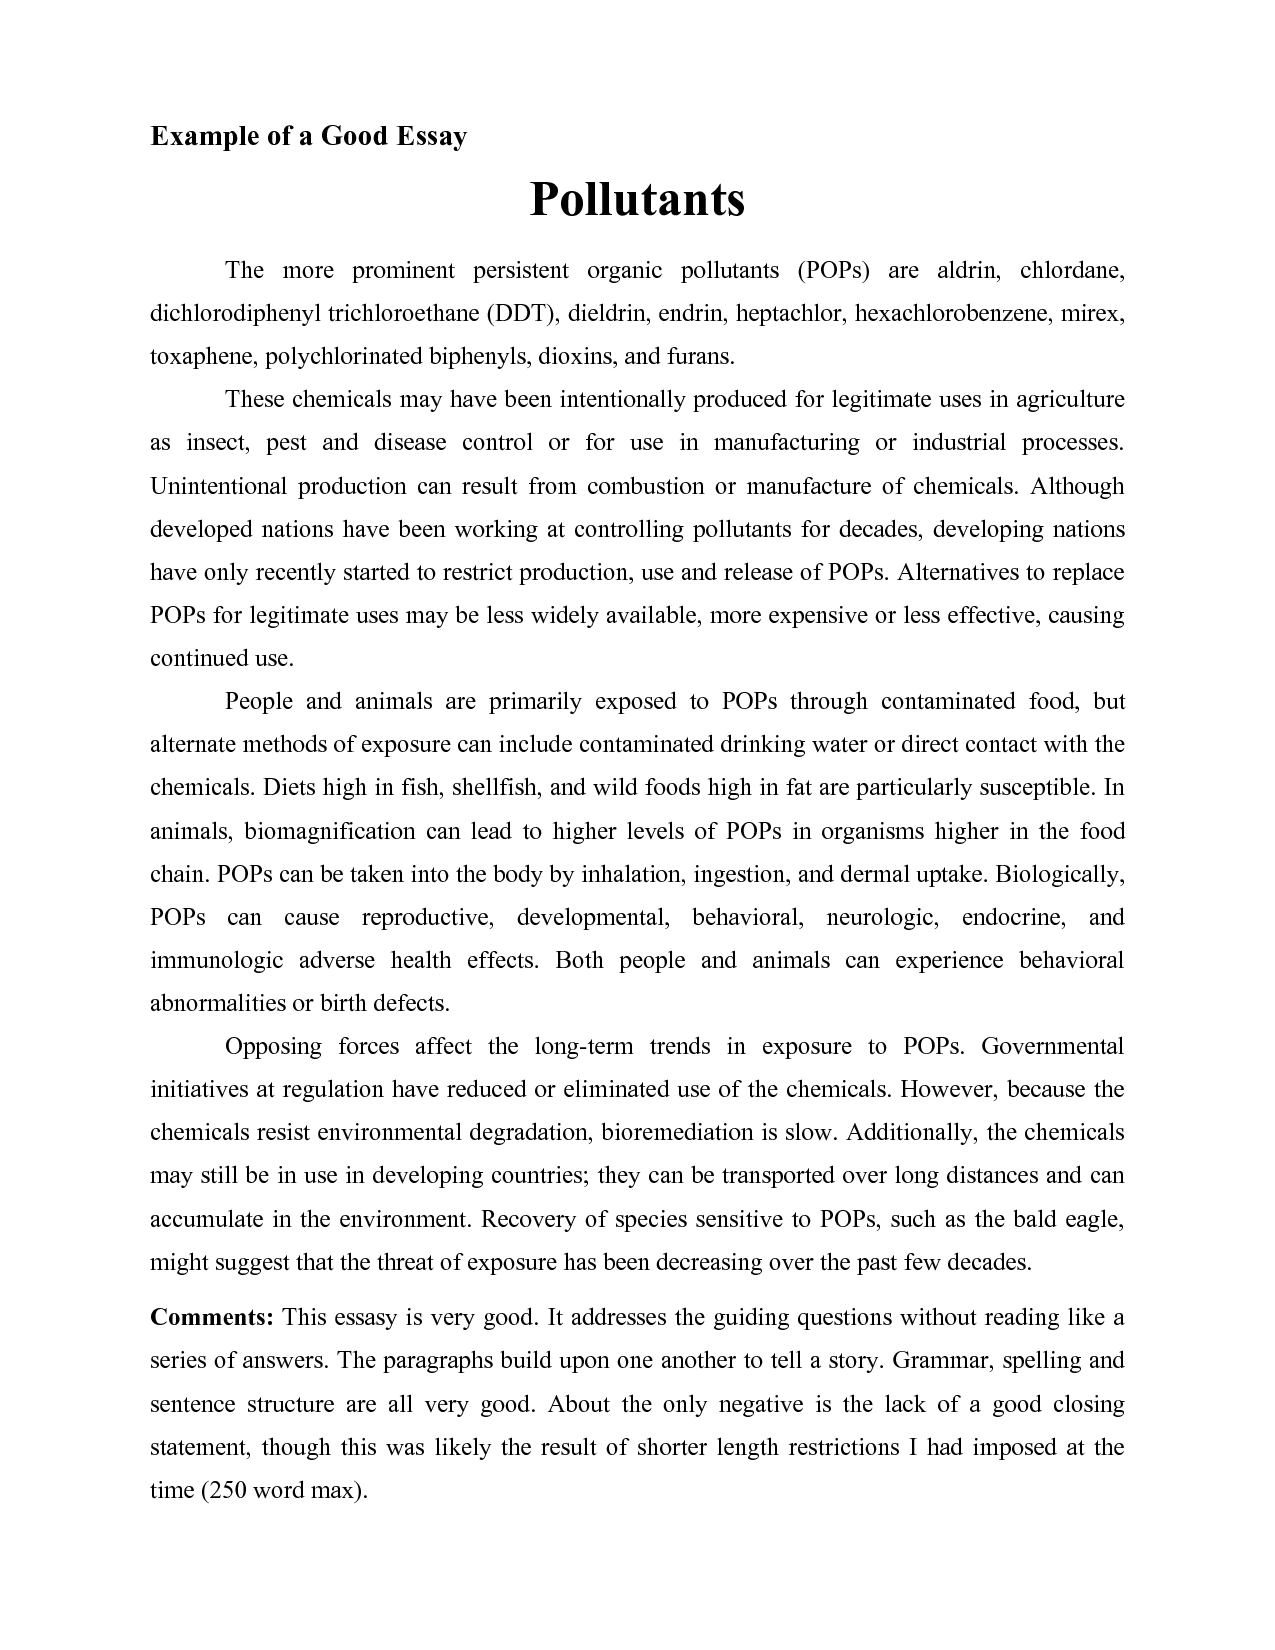 Global Warming Essay In English How To Be Good At Writing Essays  Opinion Of Professionals Thesis Statement Examples For Argumentative Essays also How To Write A Proposal Essay How To Be Good At Writing Essays  Opinion Of Professionals  Games  Psychology As A Science Essay